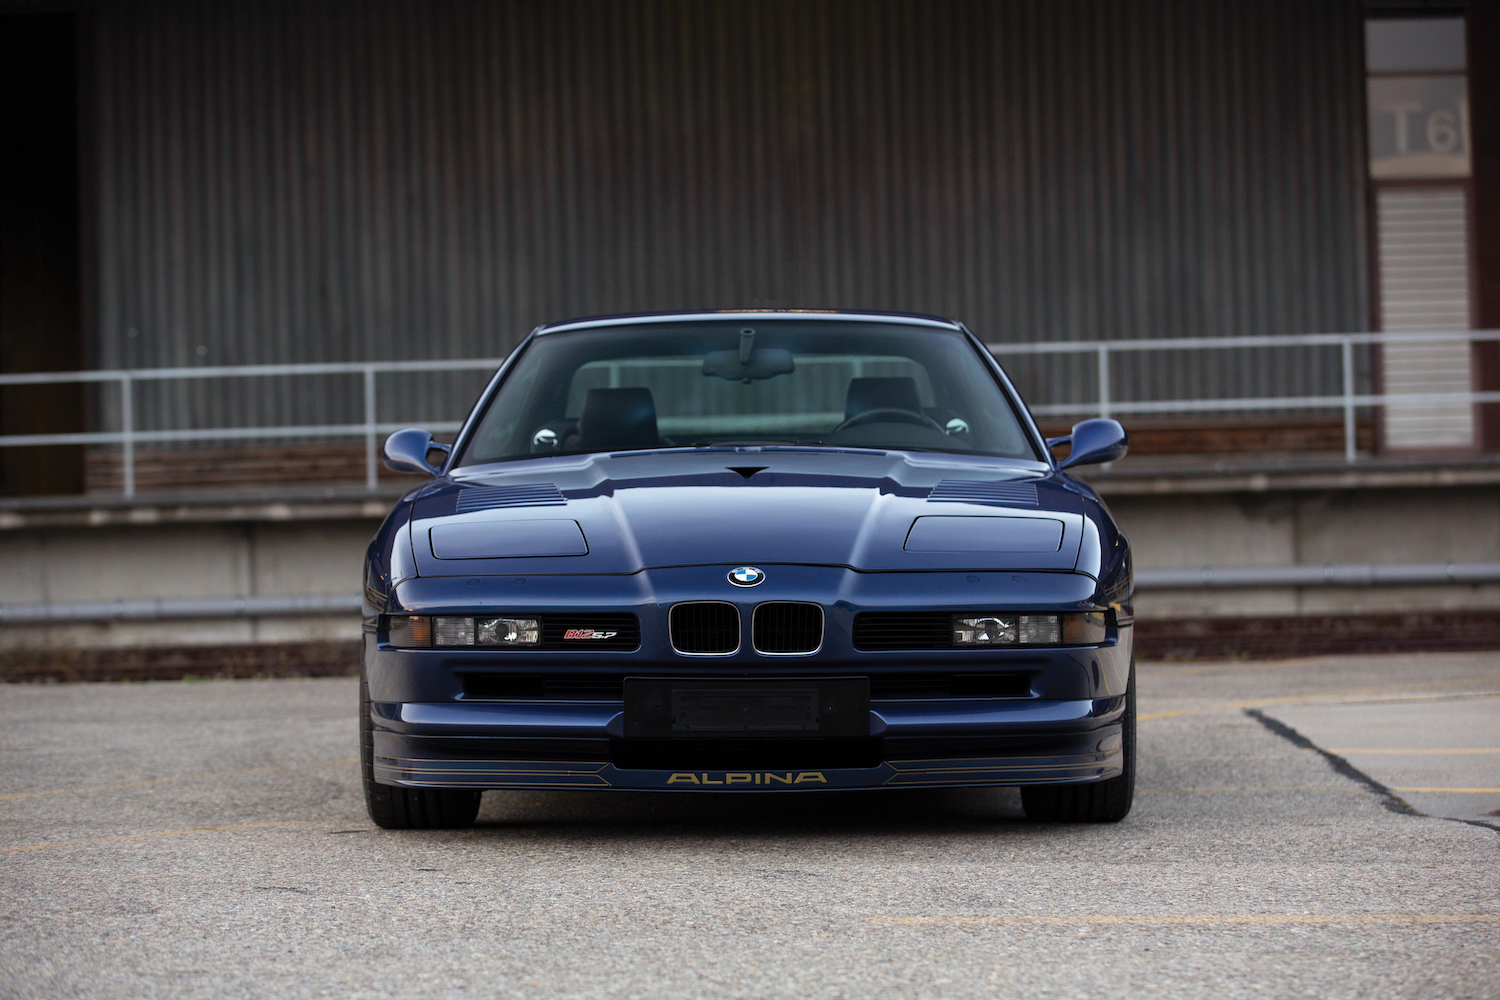 This Alpina B12 may just be the best classic BMW 8 Series money can buy